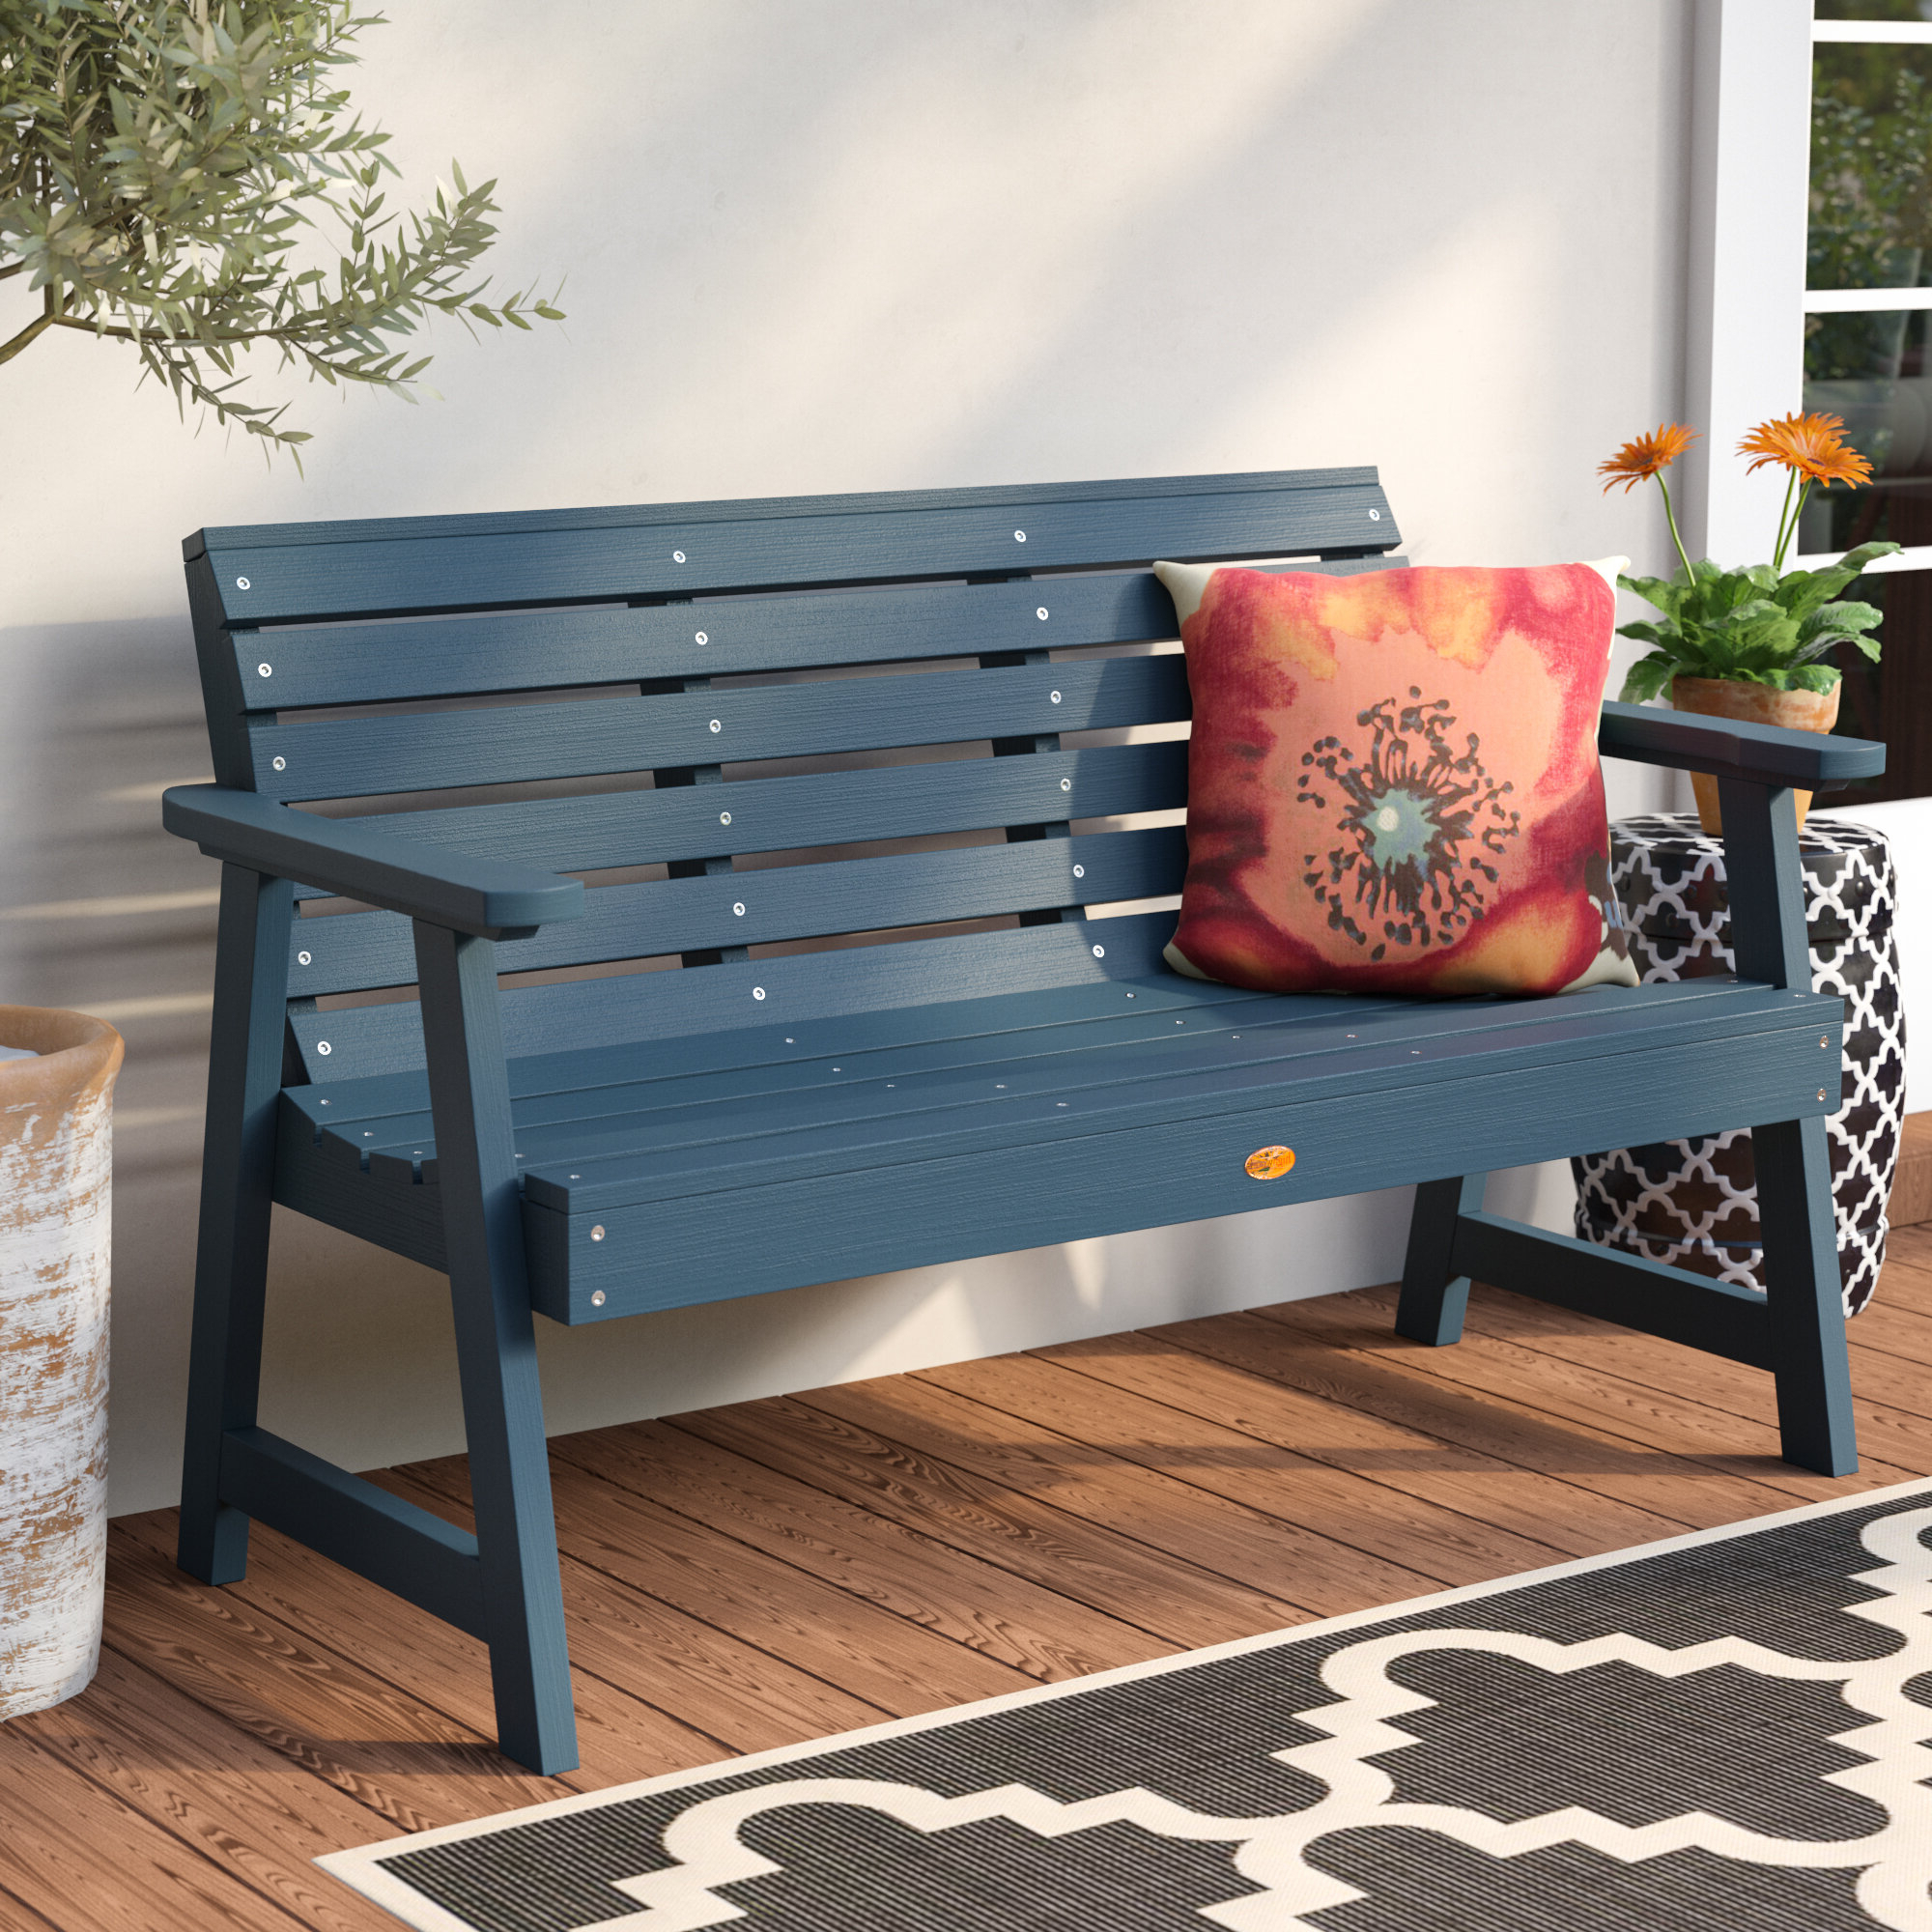 Trigg Synthetic Wood Garden Bench Throughout Widely Used Bence Plastic Outdoor Garden Benches (View 9 of 25)